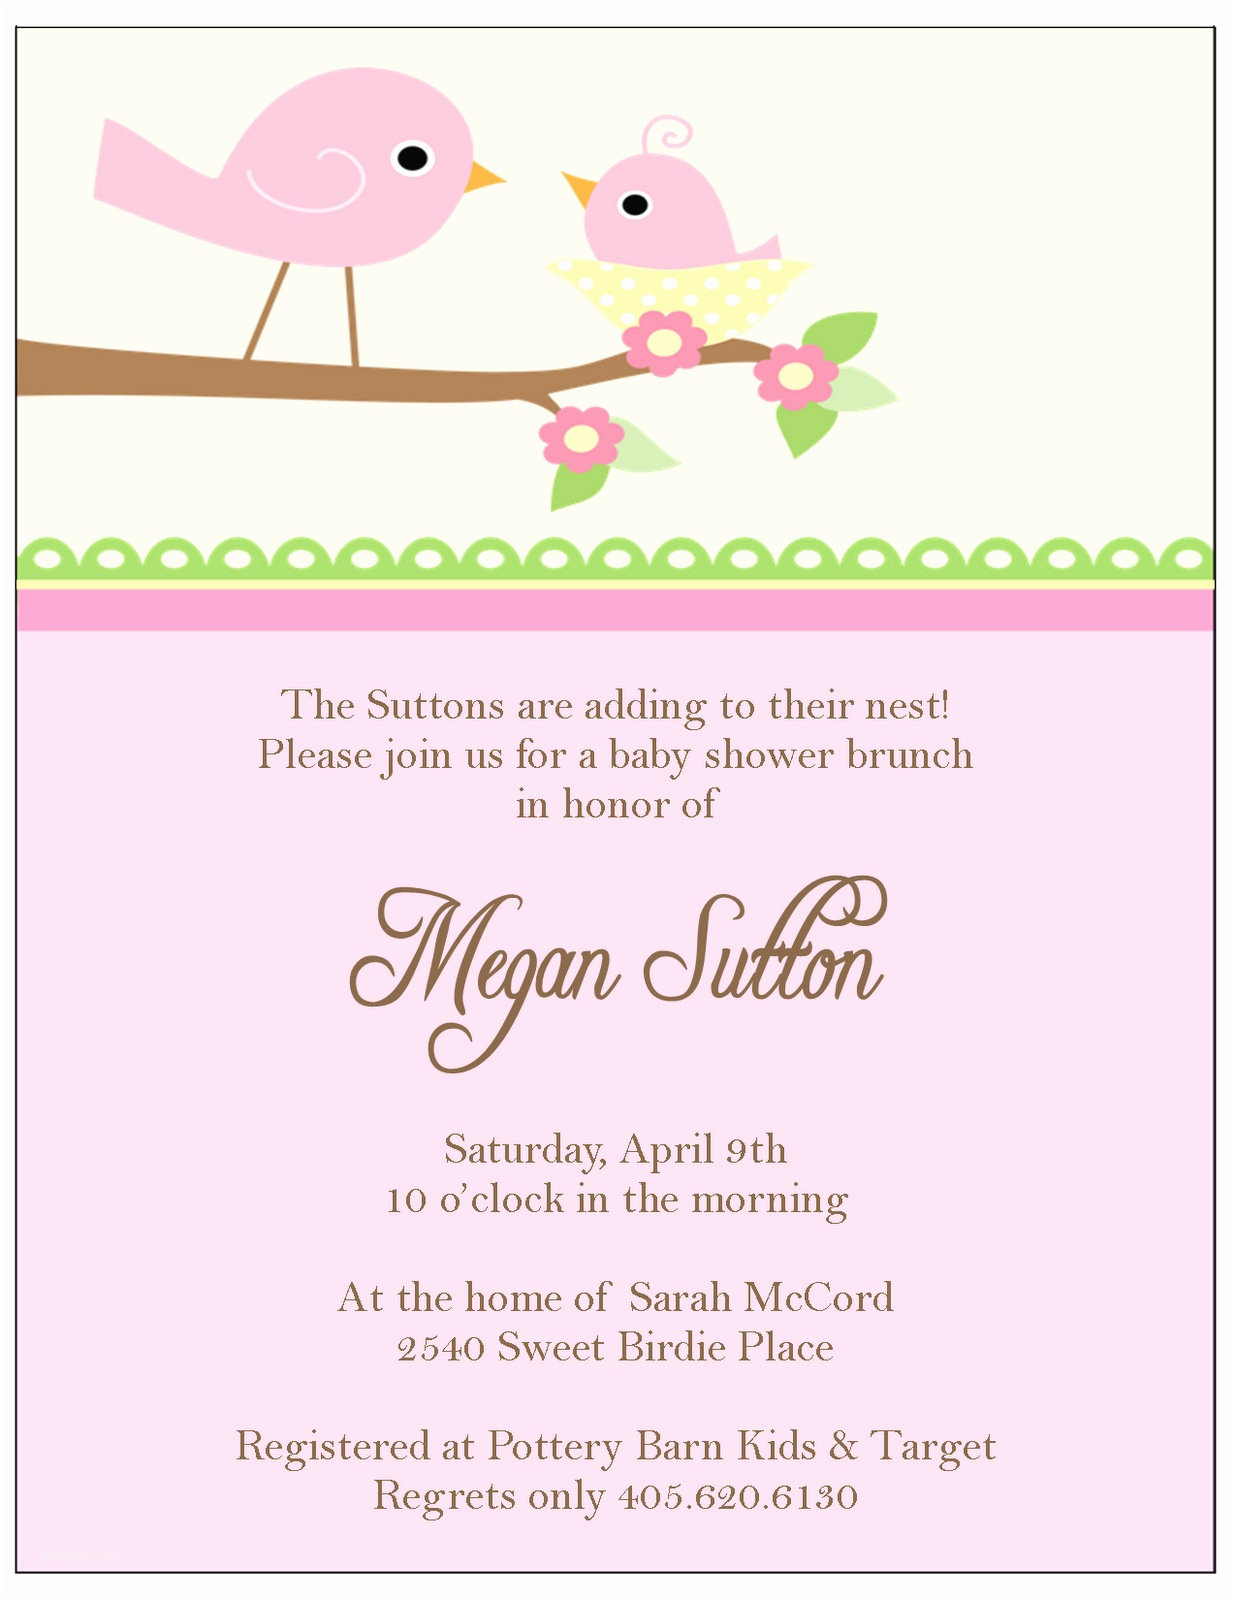 Baby Shower Invitations Girl the Sweet Peach Paperie Little Bir Baby Shower Invitations